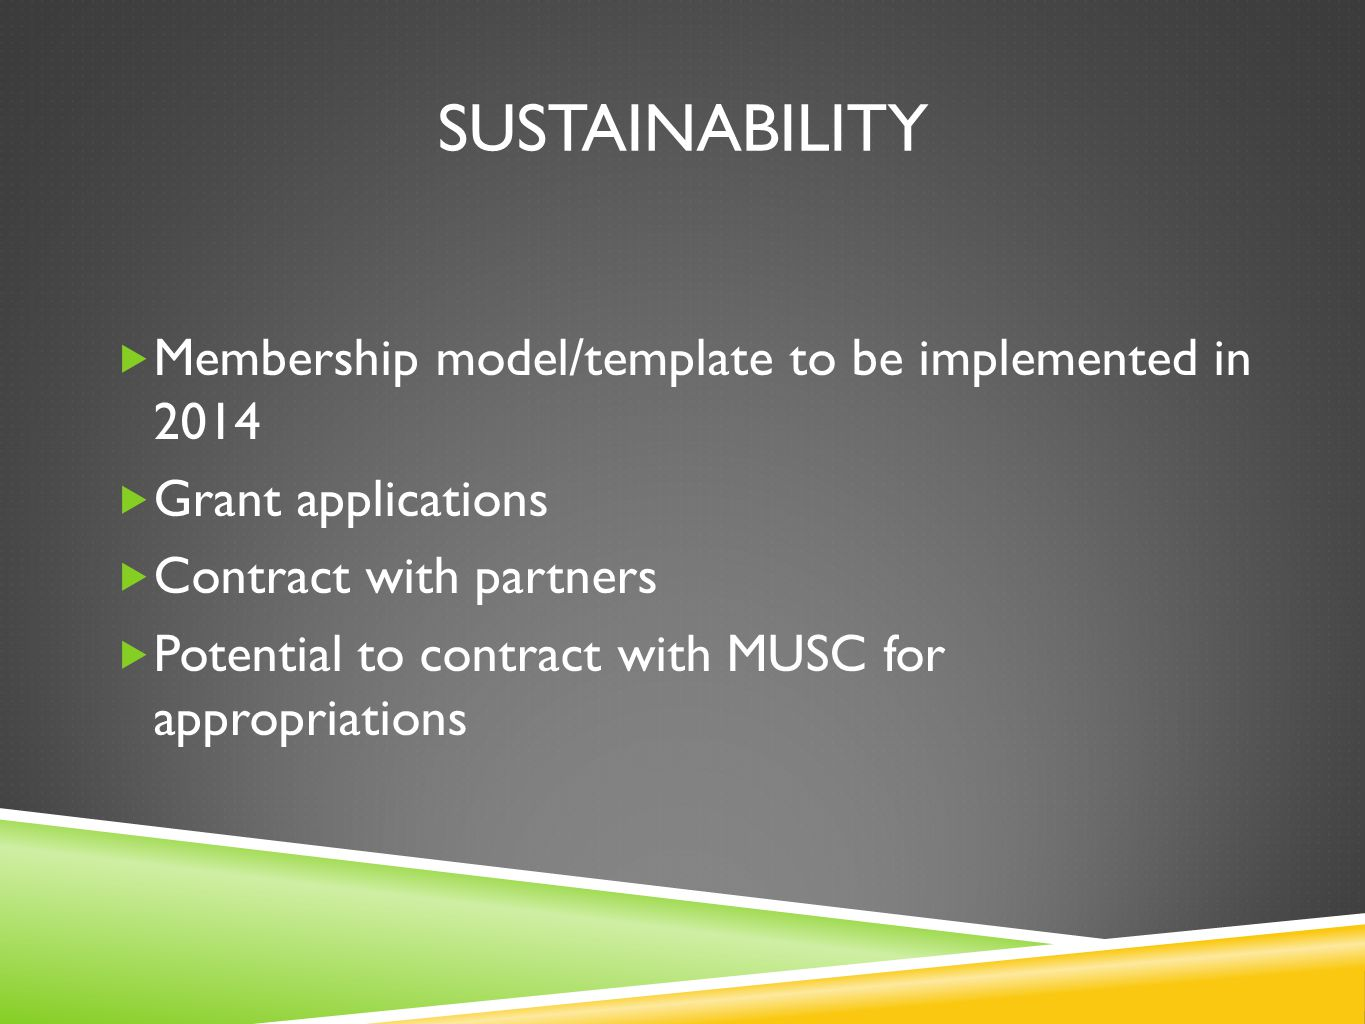 SUSTAINABILITY Membership model/template to be implemented in 2014 Grant applications Contract with partners Potential to contract with MUSC for appro